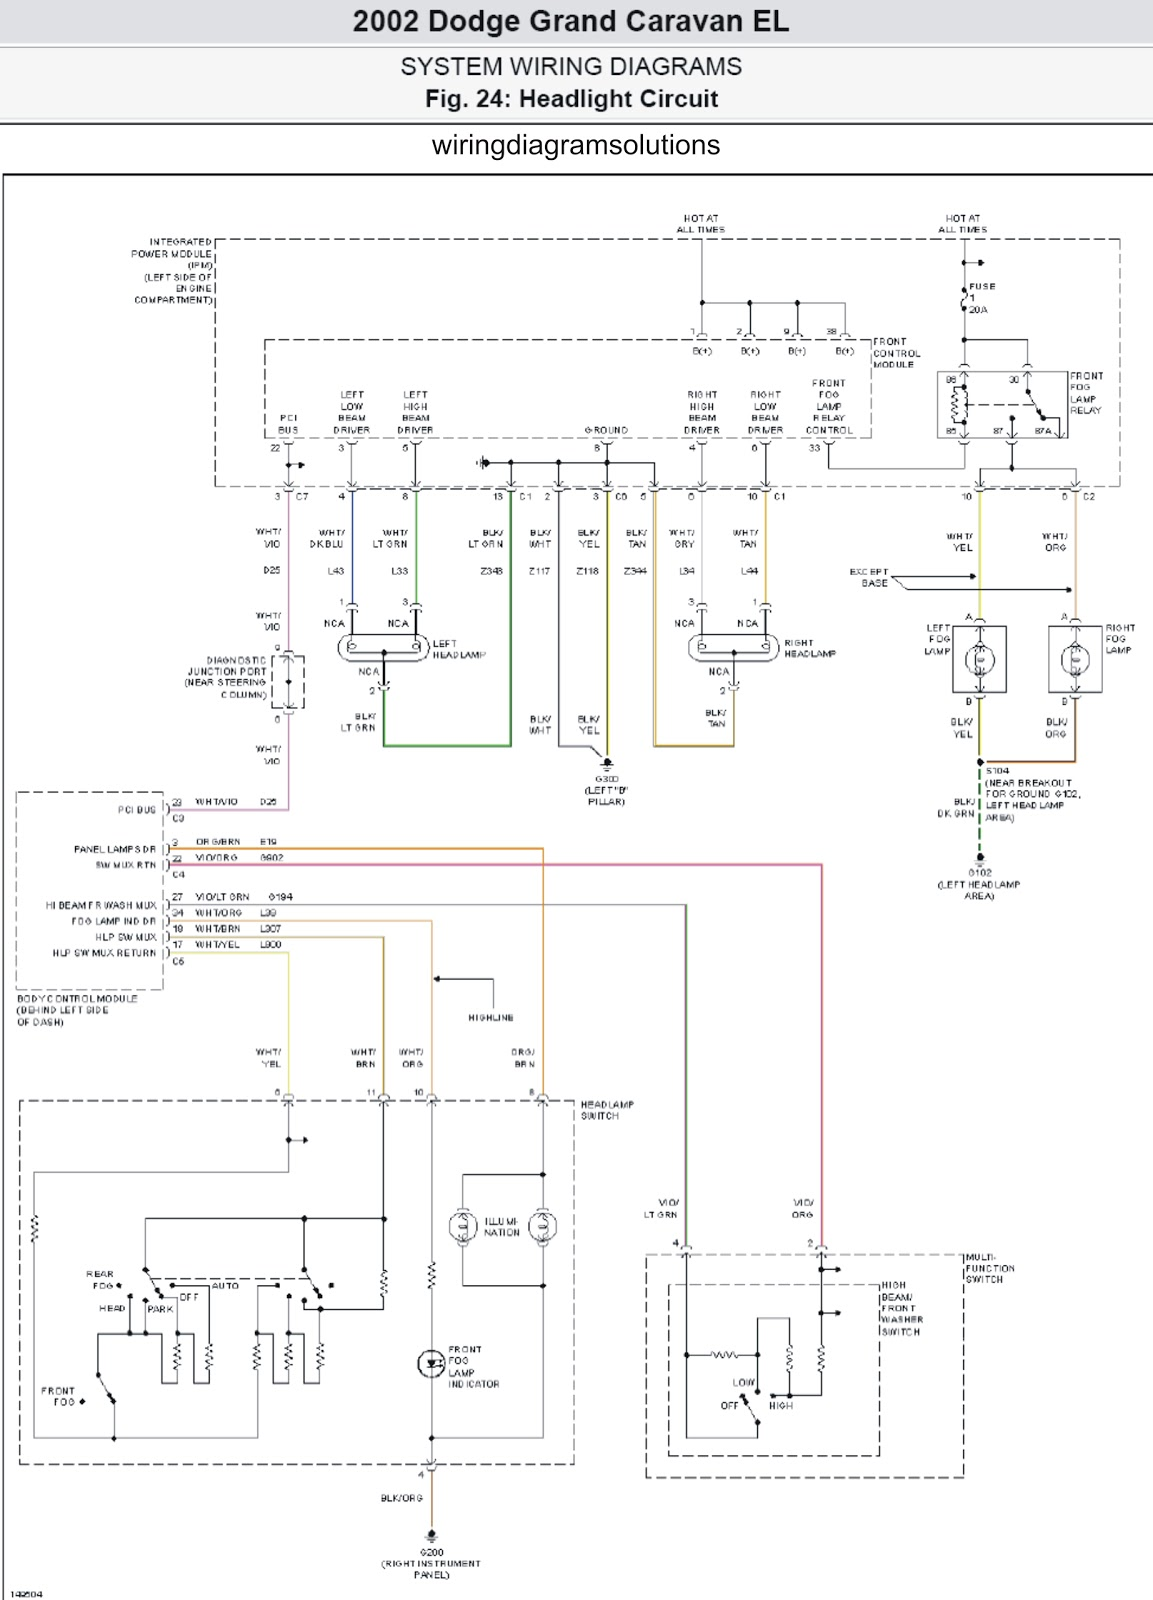 2002+dodge+caravan+Headlight+Circuit 02 caravan starter wiring diagram square d motor starter wiring 2002 chrysler voyager wiring diagram at honlapkeszites.co